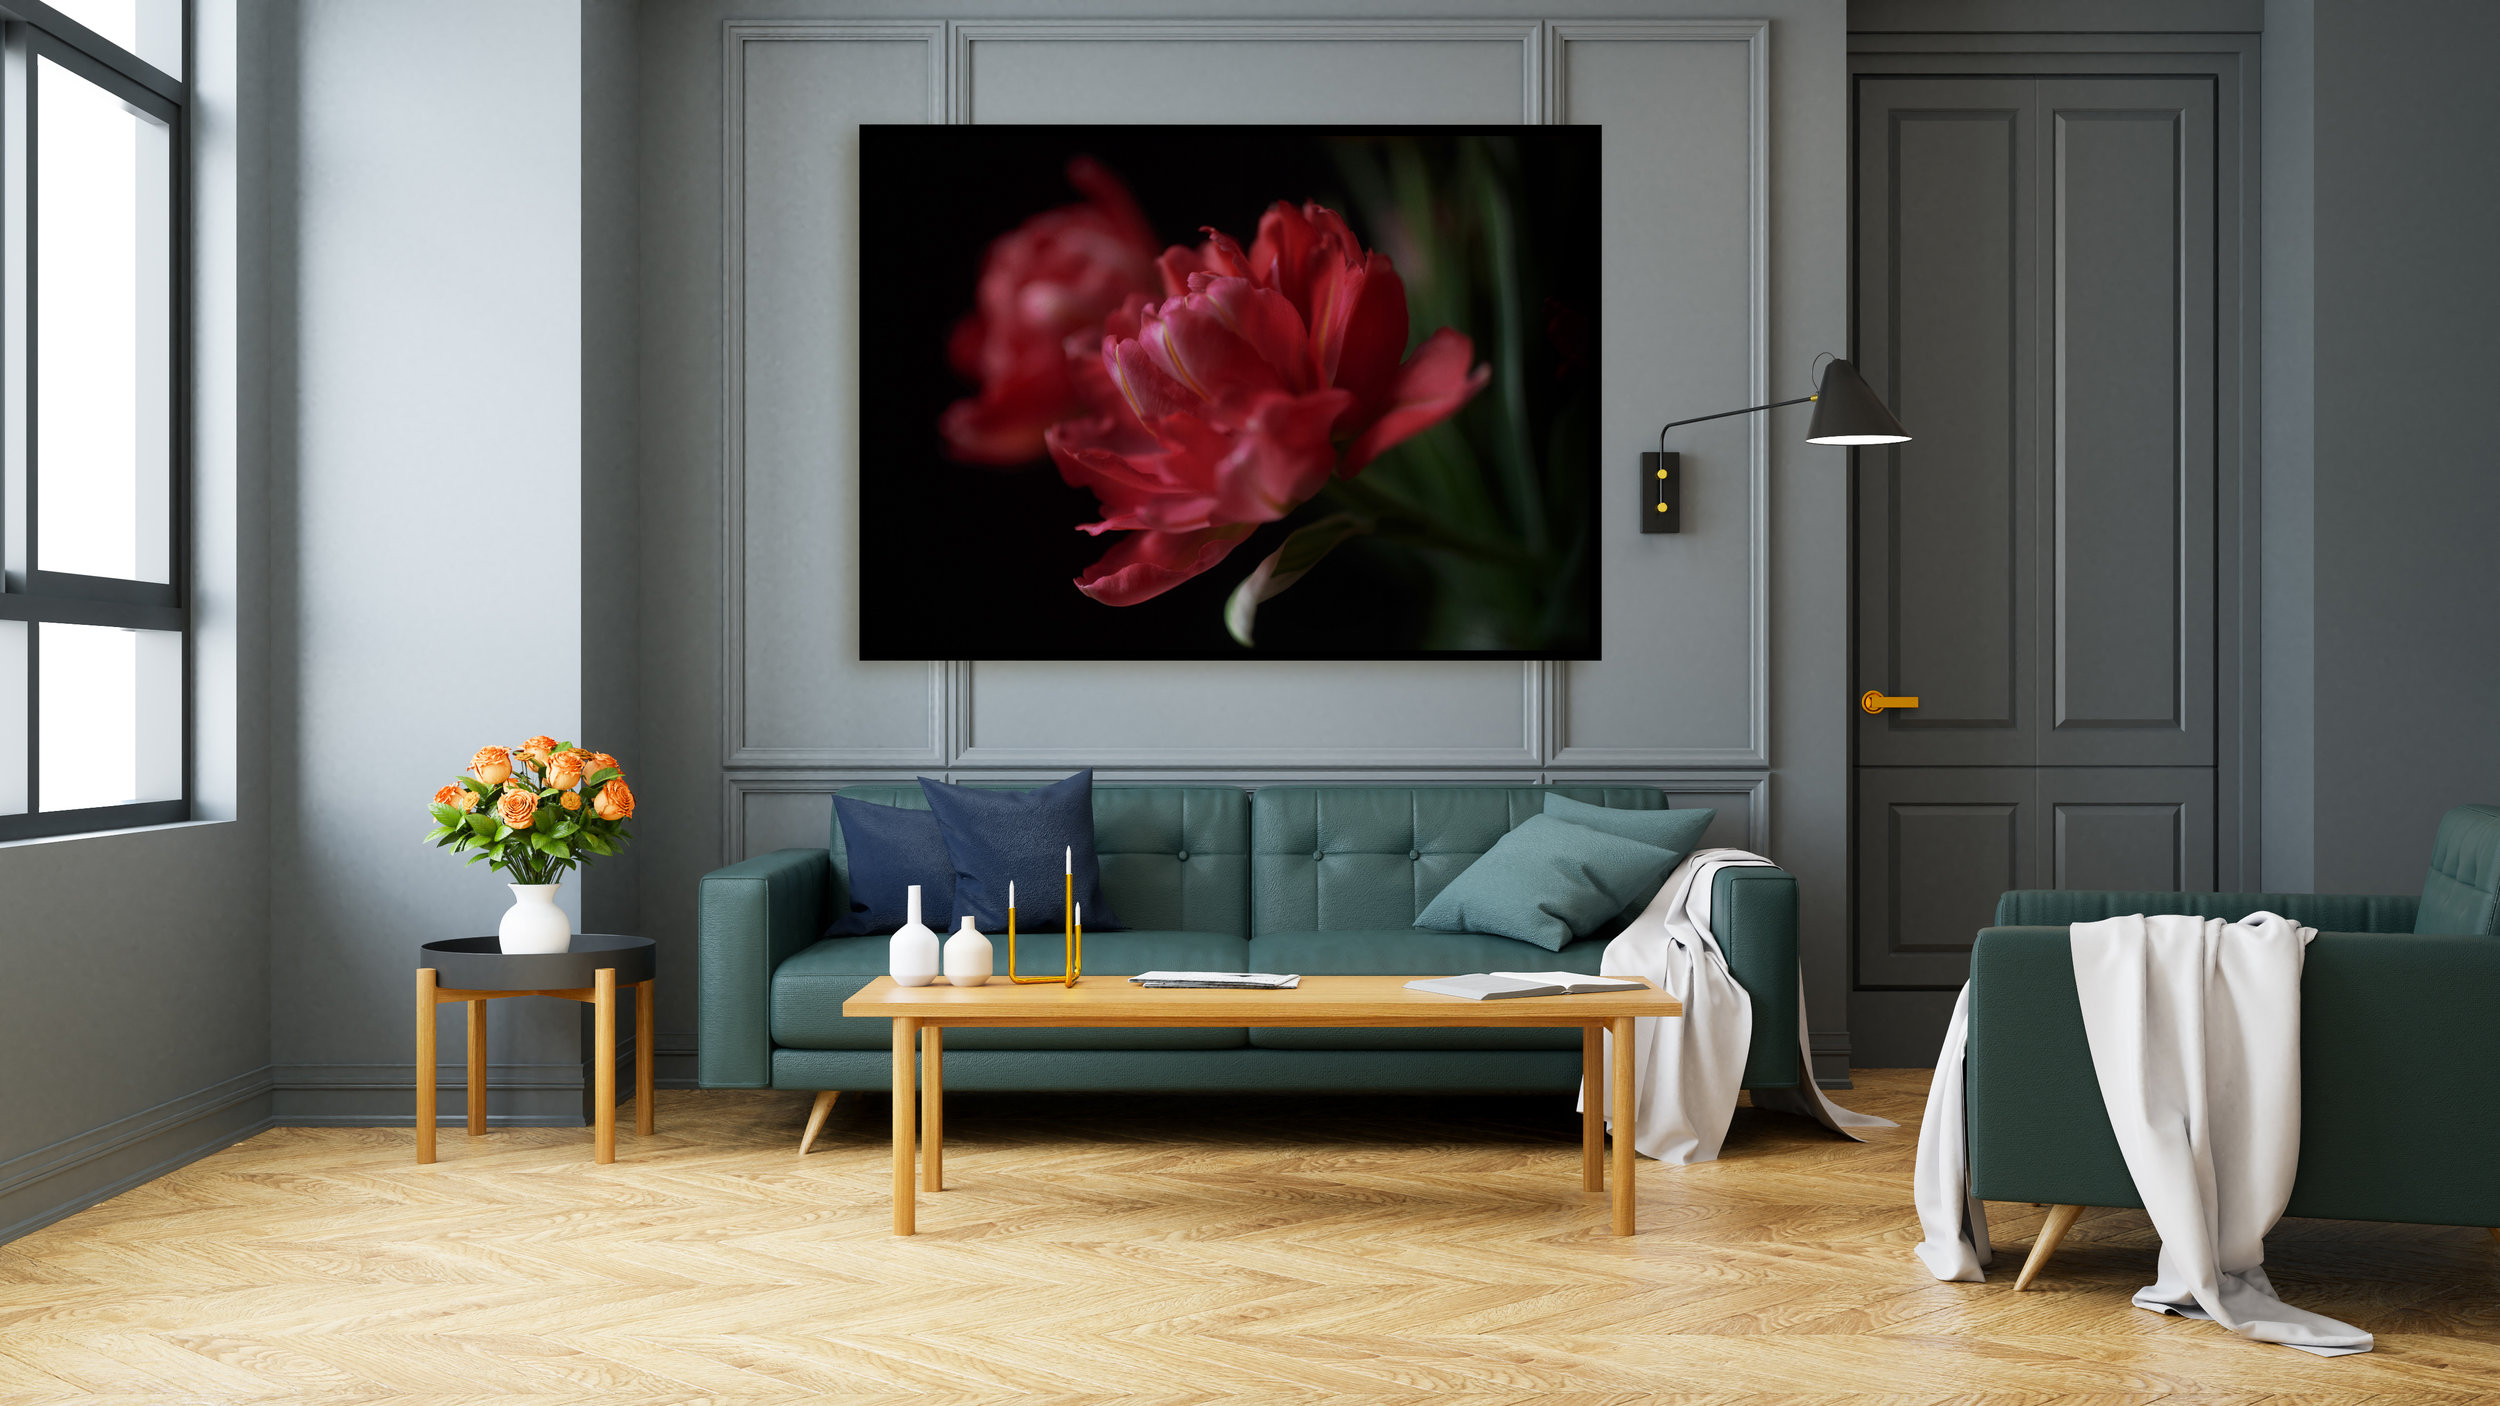 green-living-room-with-floral-art-print-interior-design.jpg